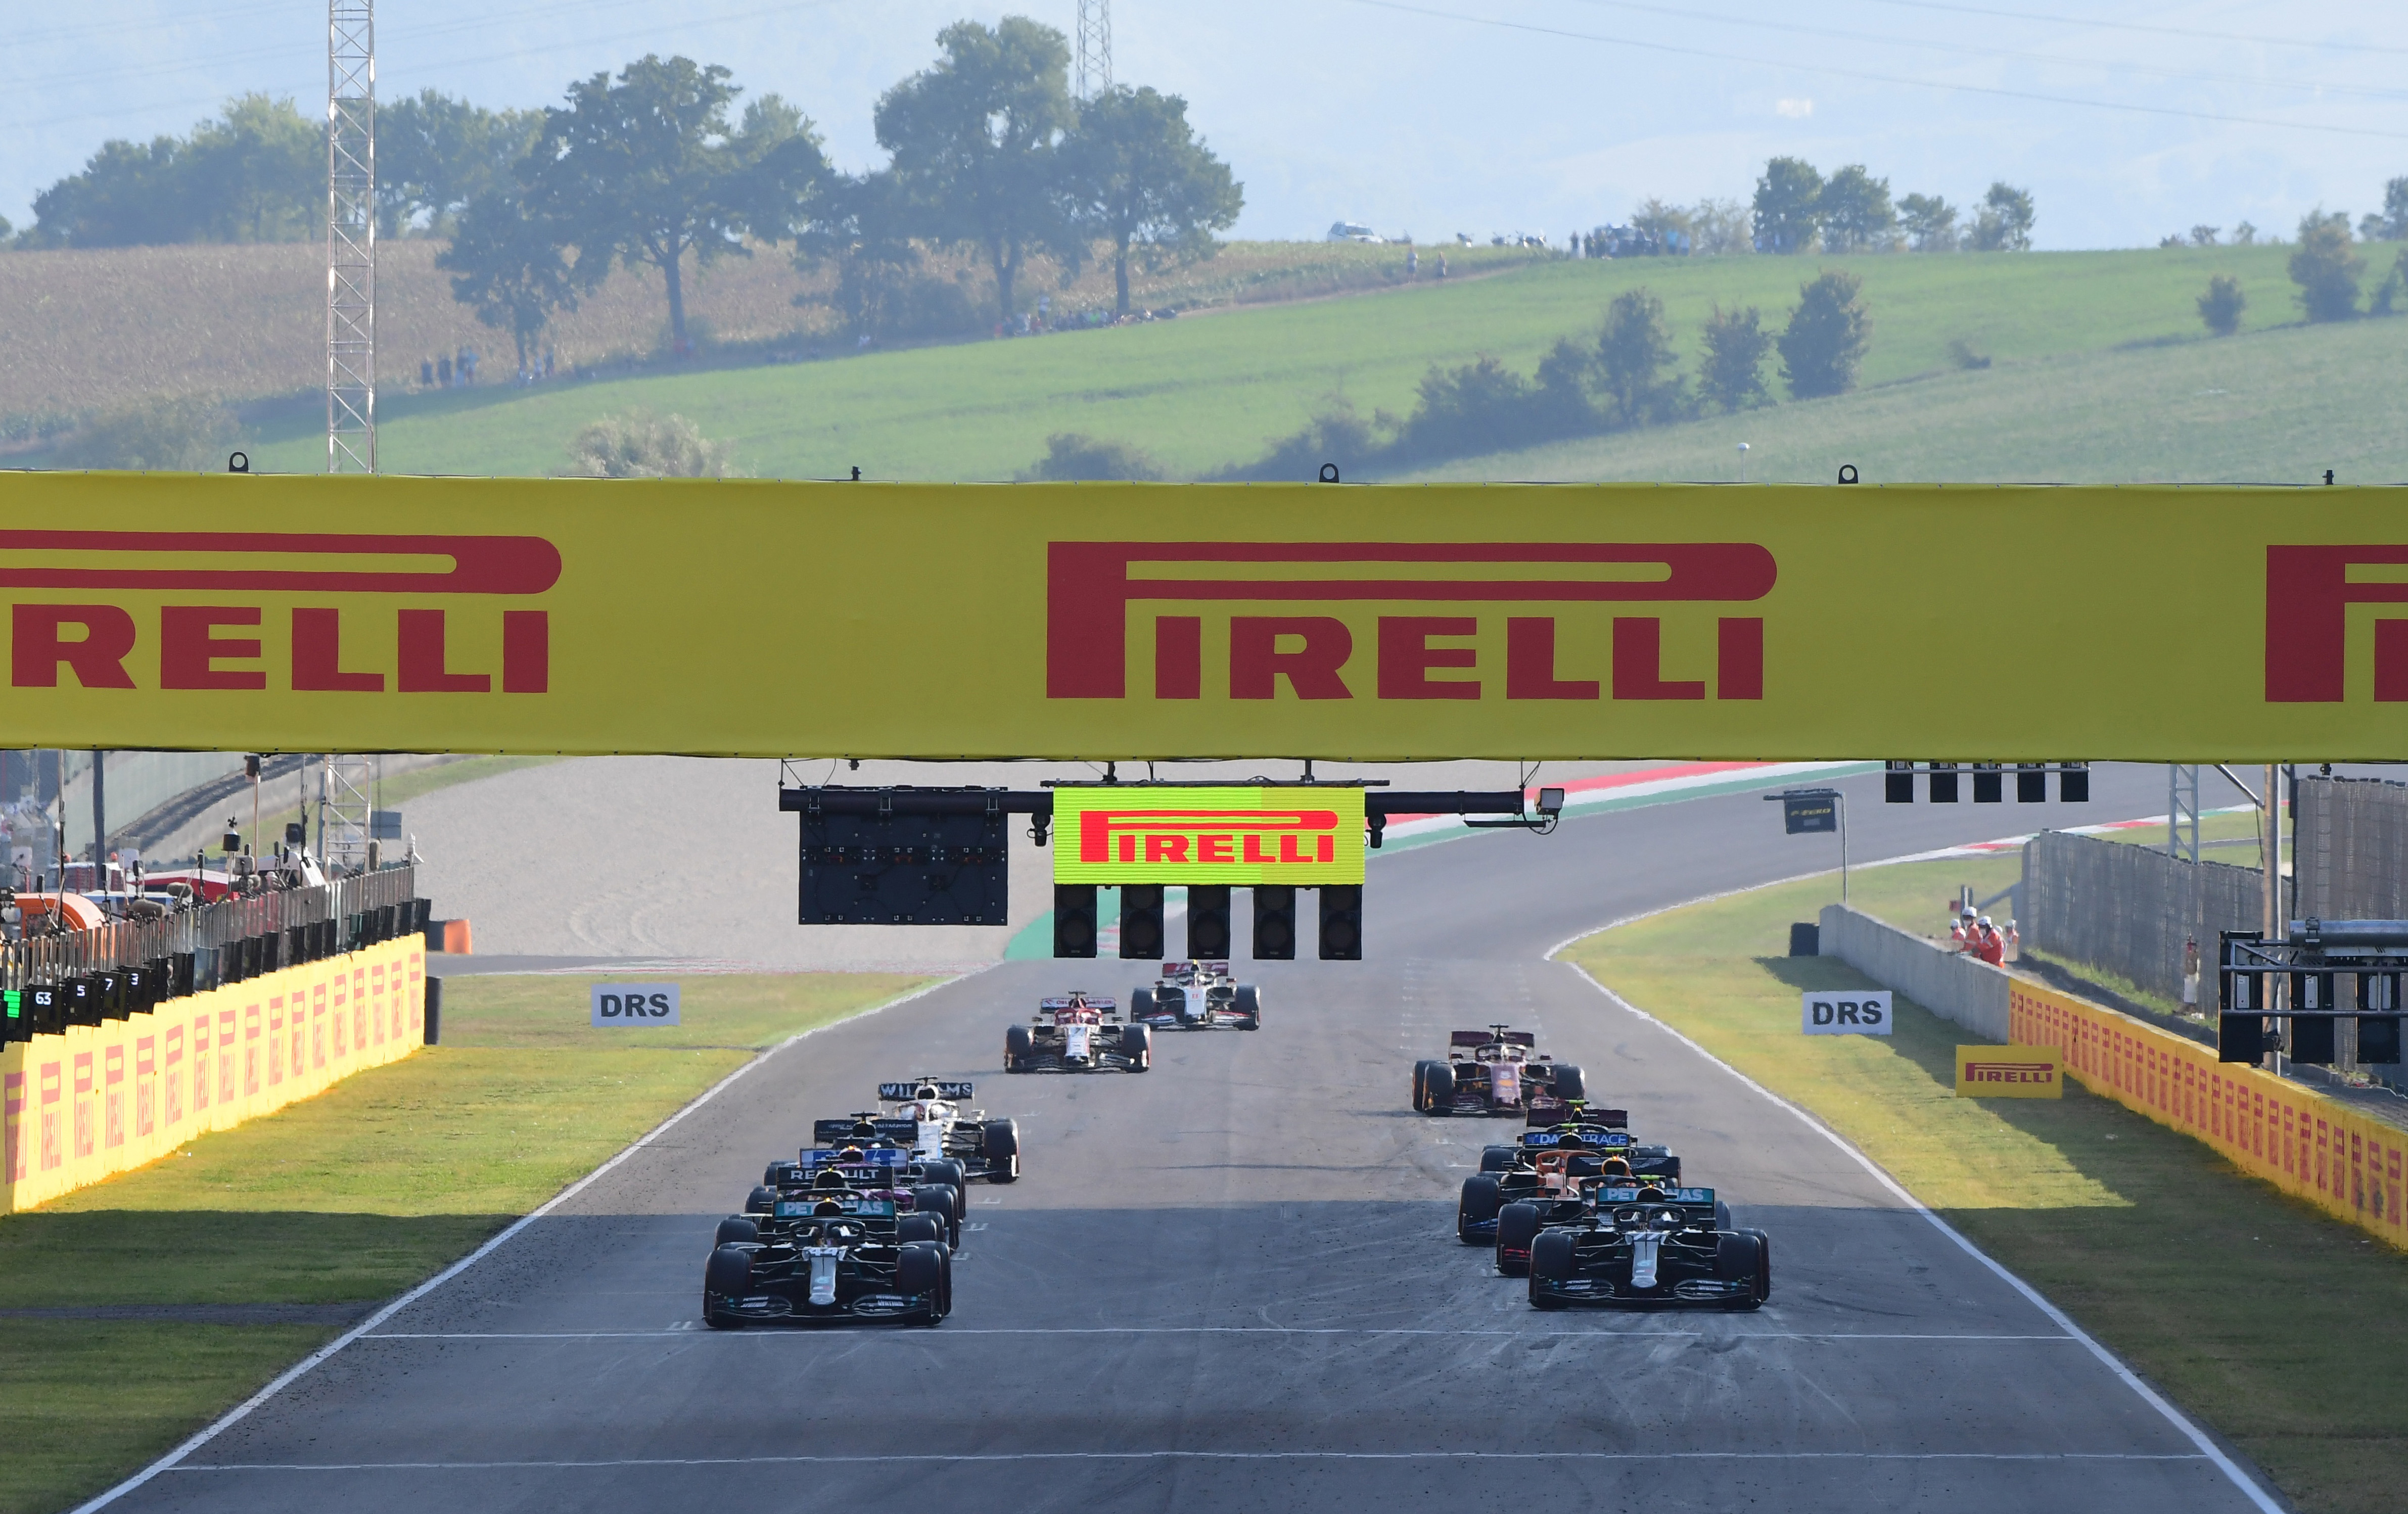 Motor Racing Formula One World Championship Tuscan Grand Prix Race Day Mugello, Italy